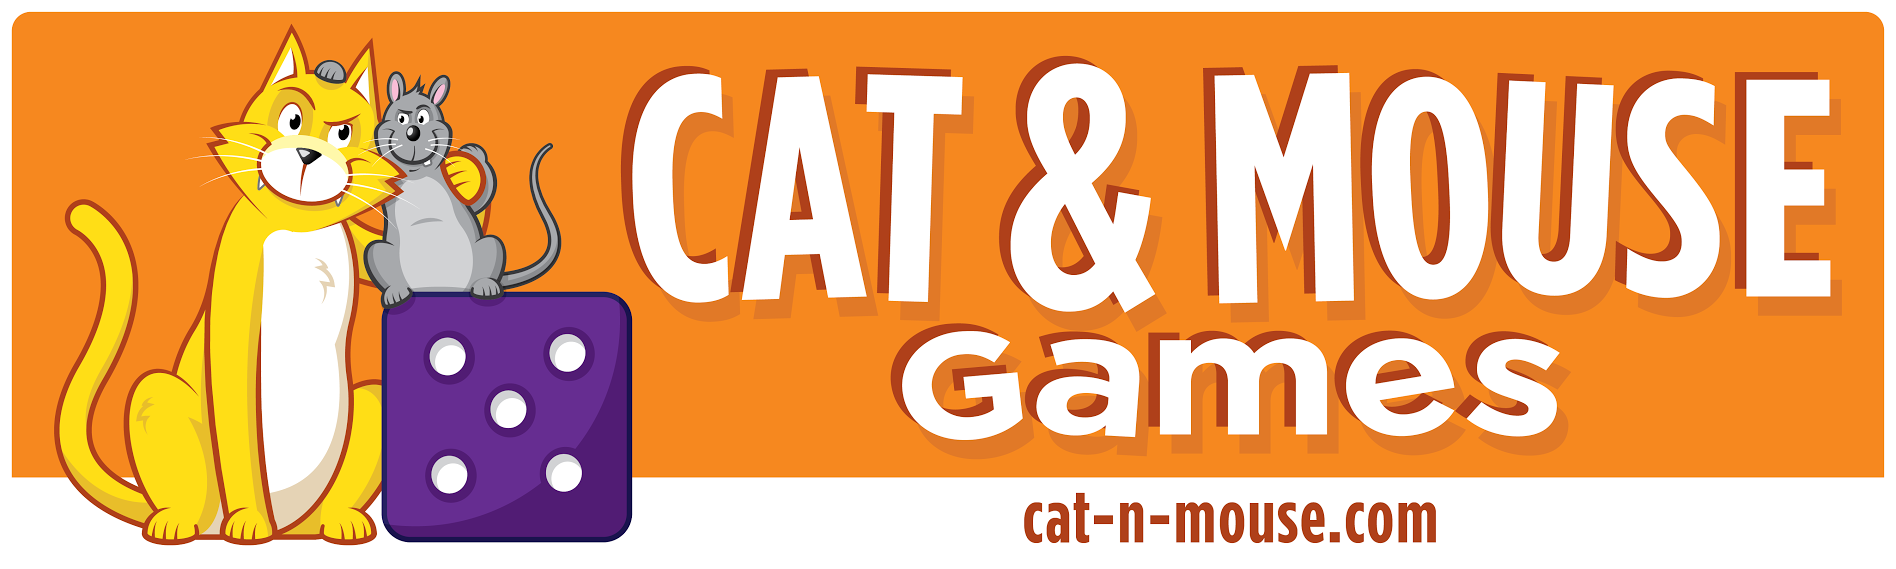 Cat & Mouse Games